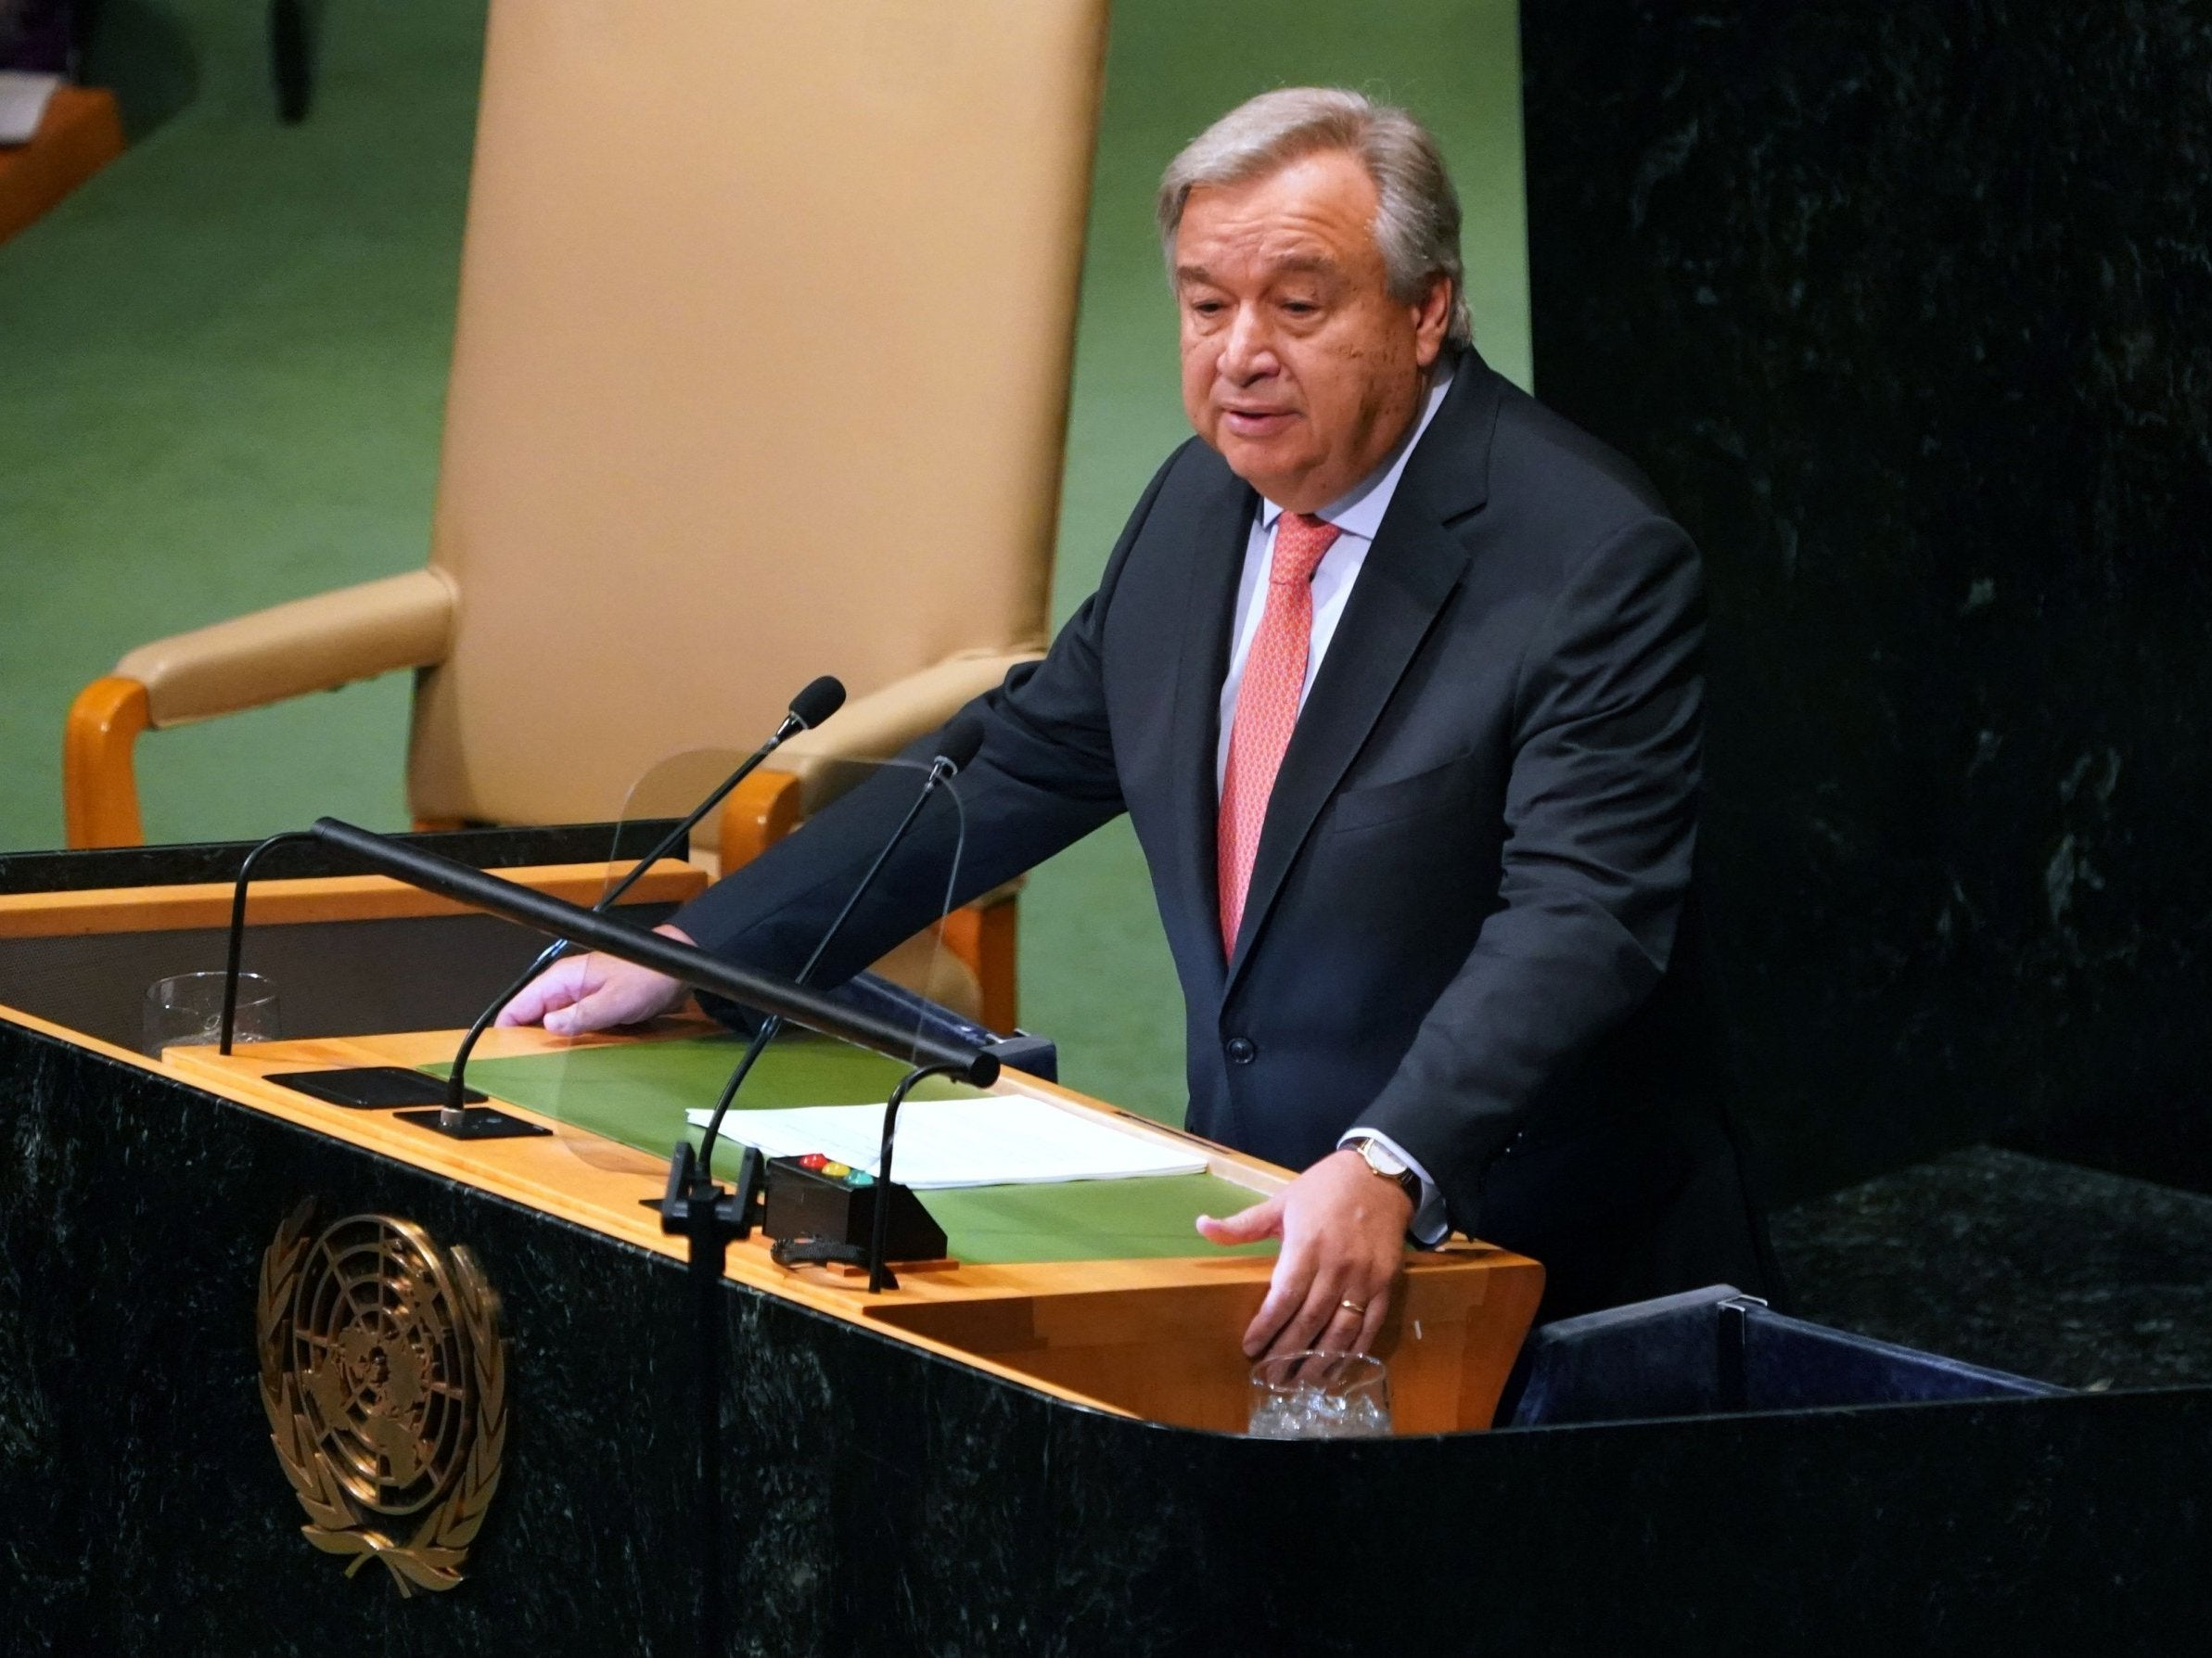 UN secretary general warns of 'increasingly chaotic' world order in veiled attack on Trump